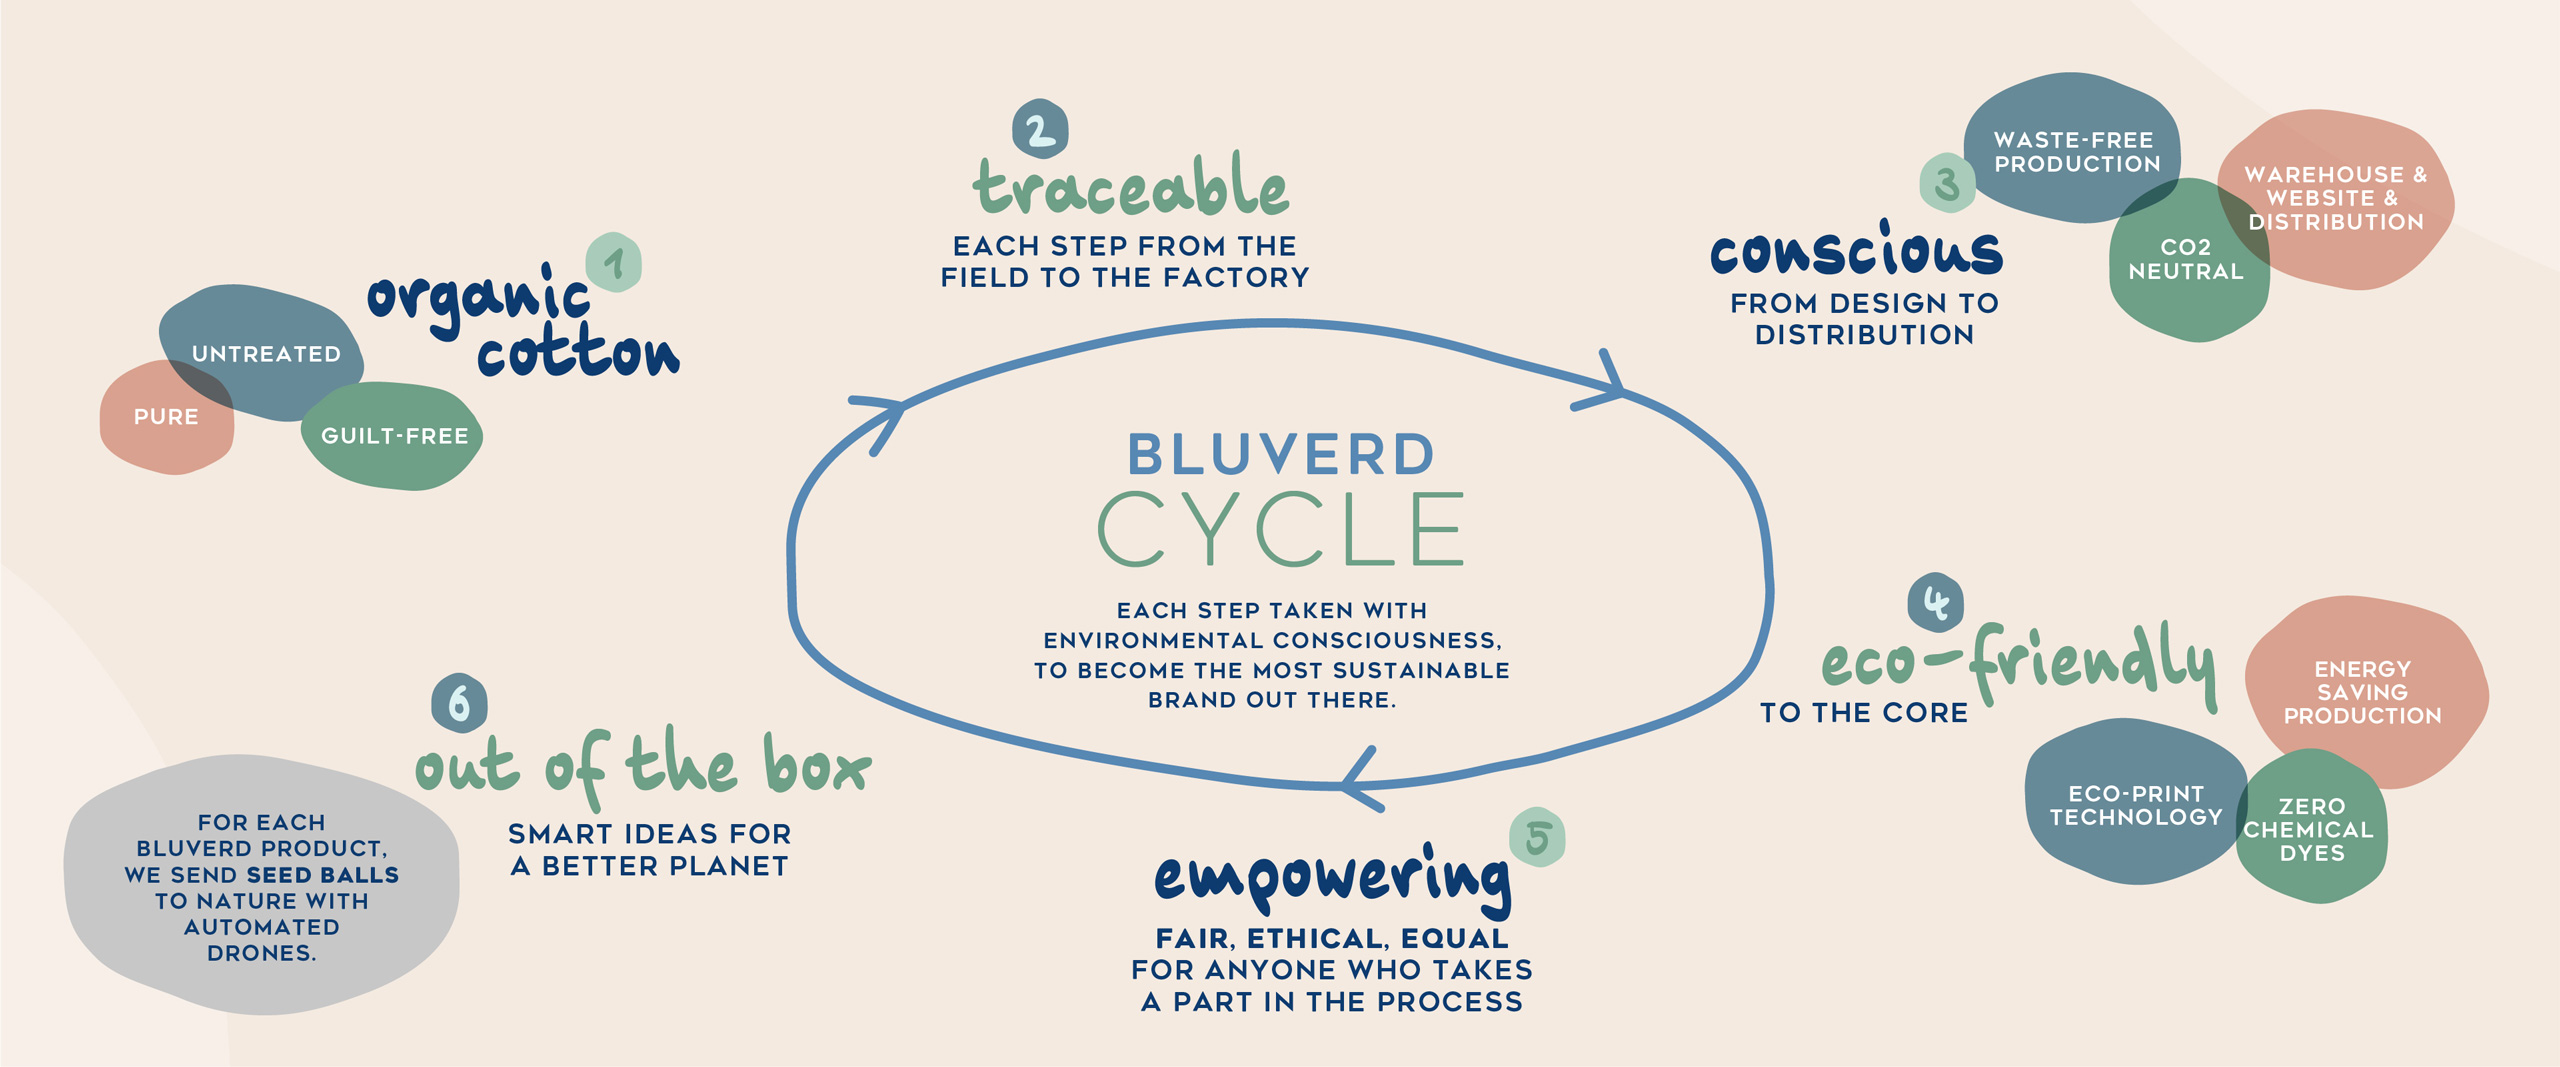 Bluverd Cycle